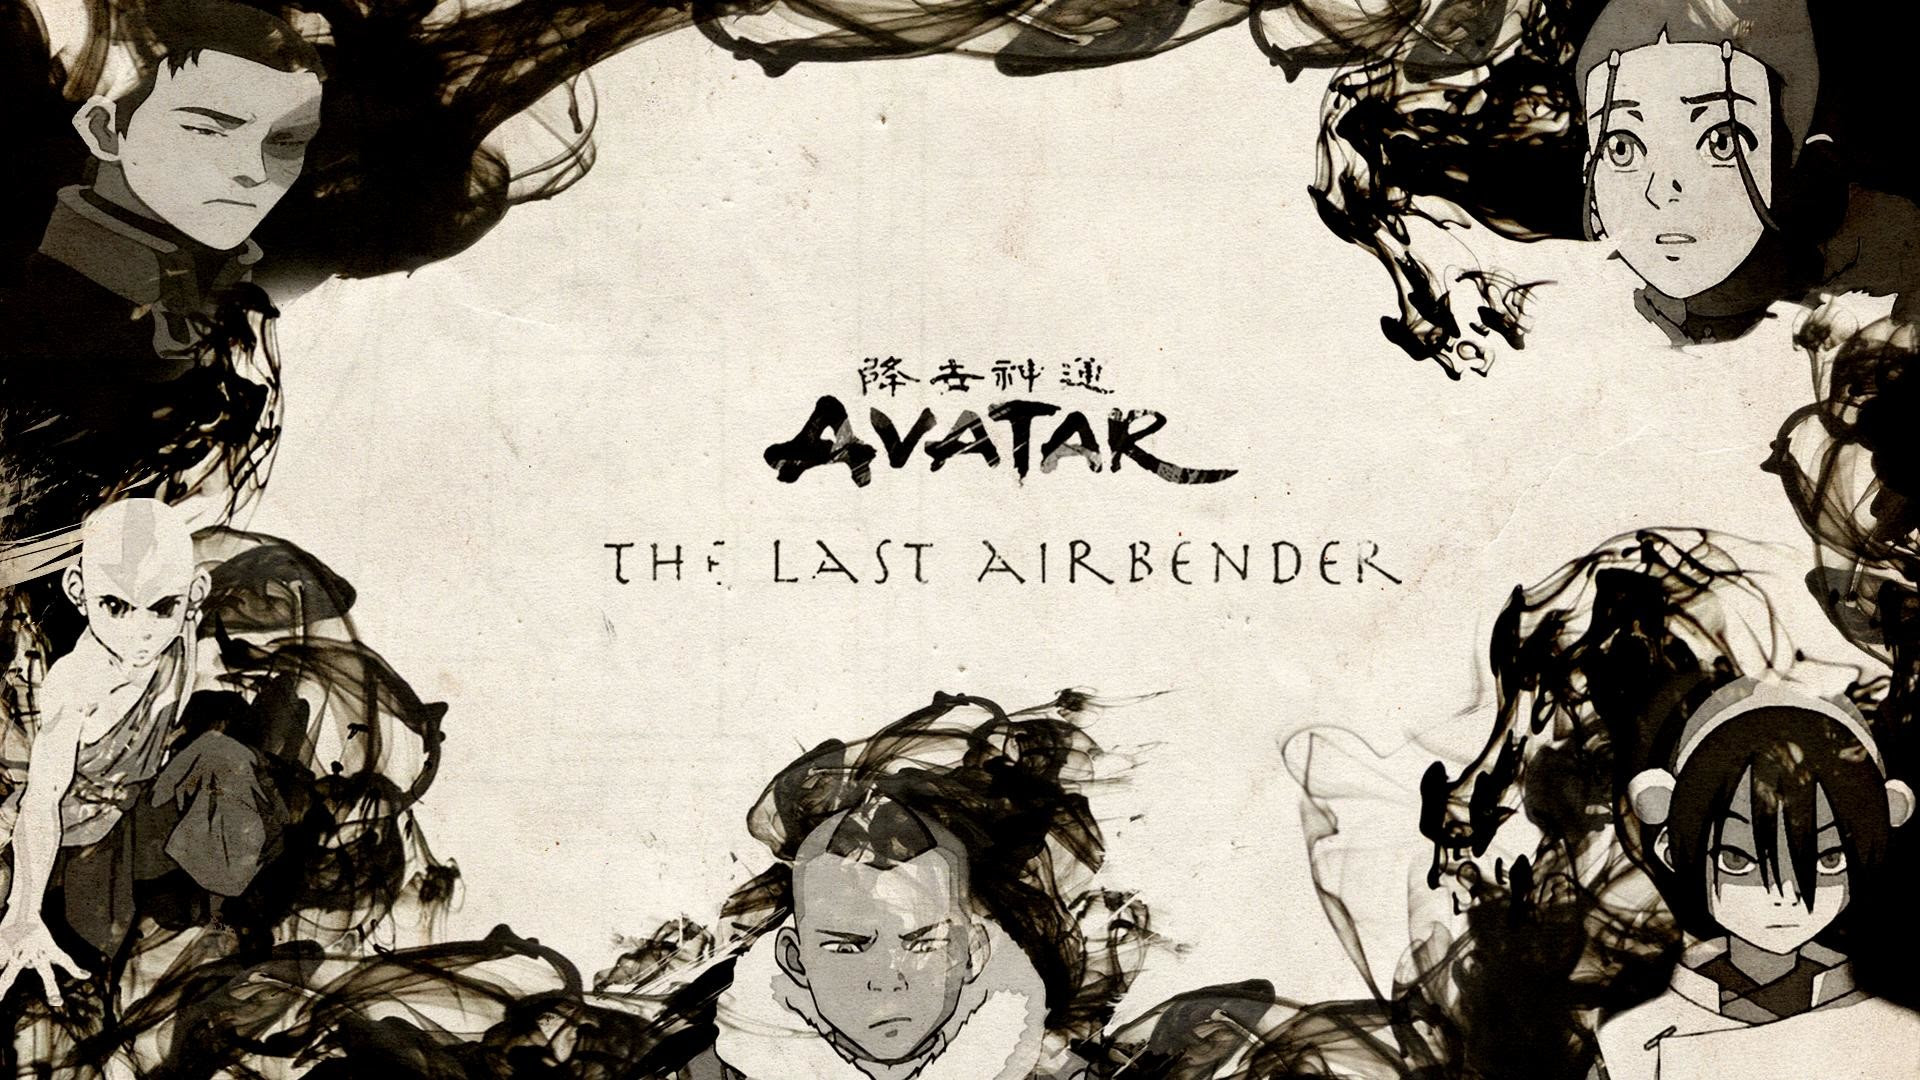 4K 1920X1080 Wallpaper Avatar The Last Airbender Download